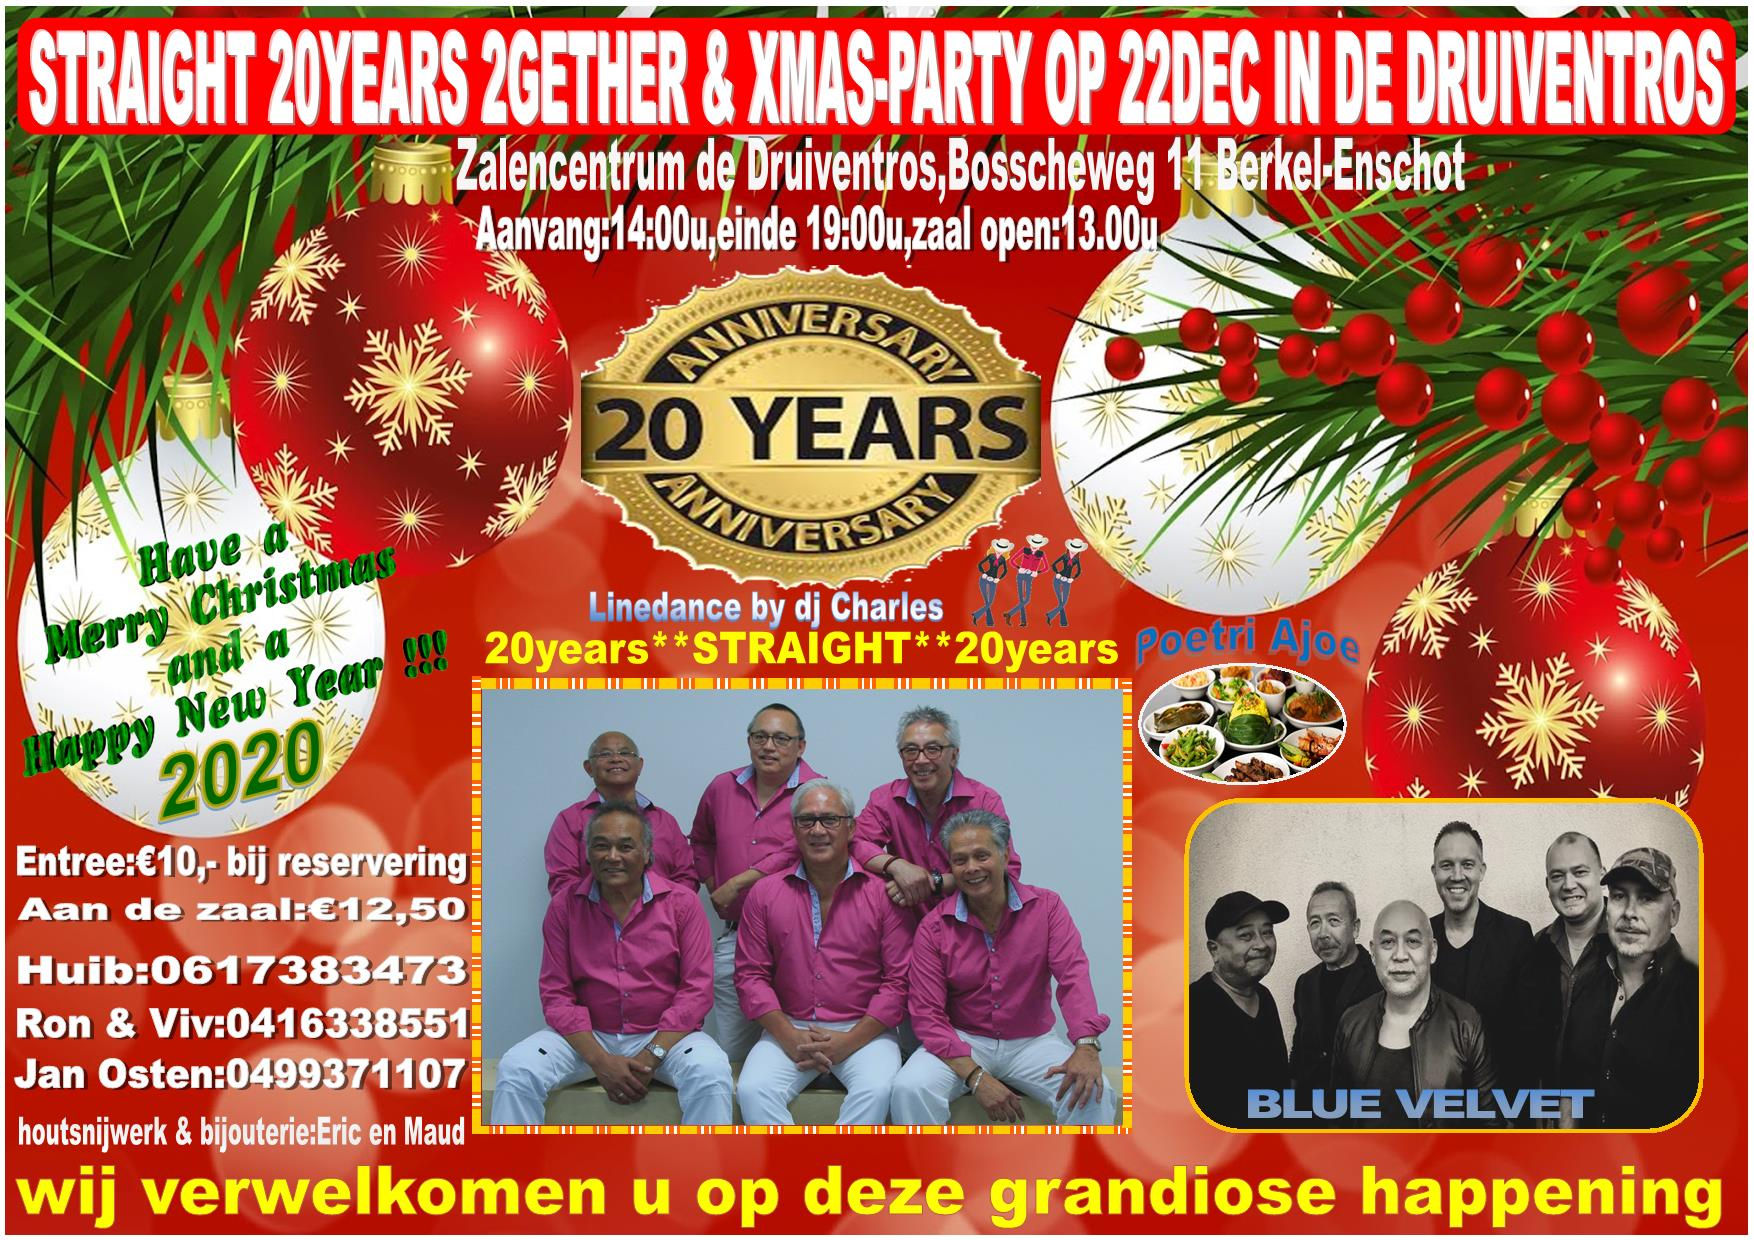 Straight 20years 2gether & special xmas-party met Straight en Blue Velvet